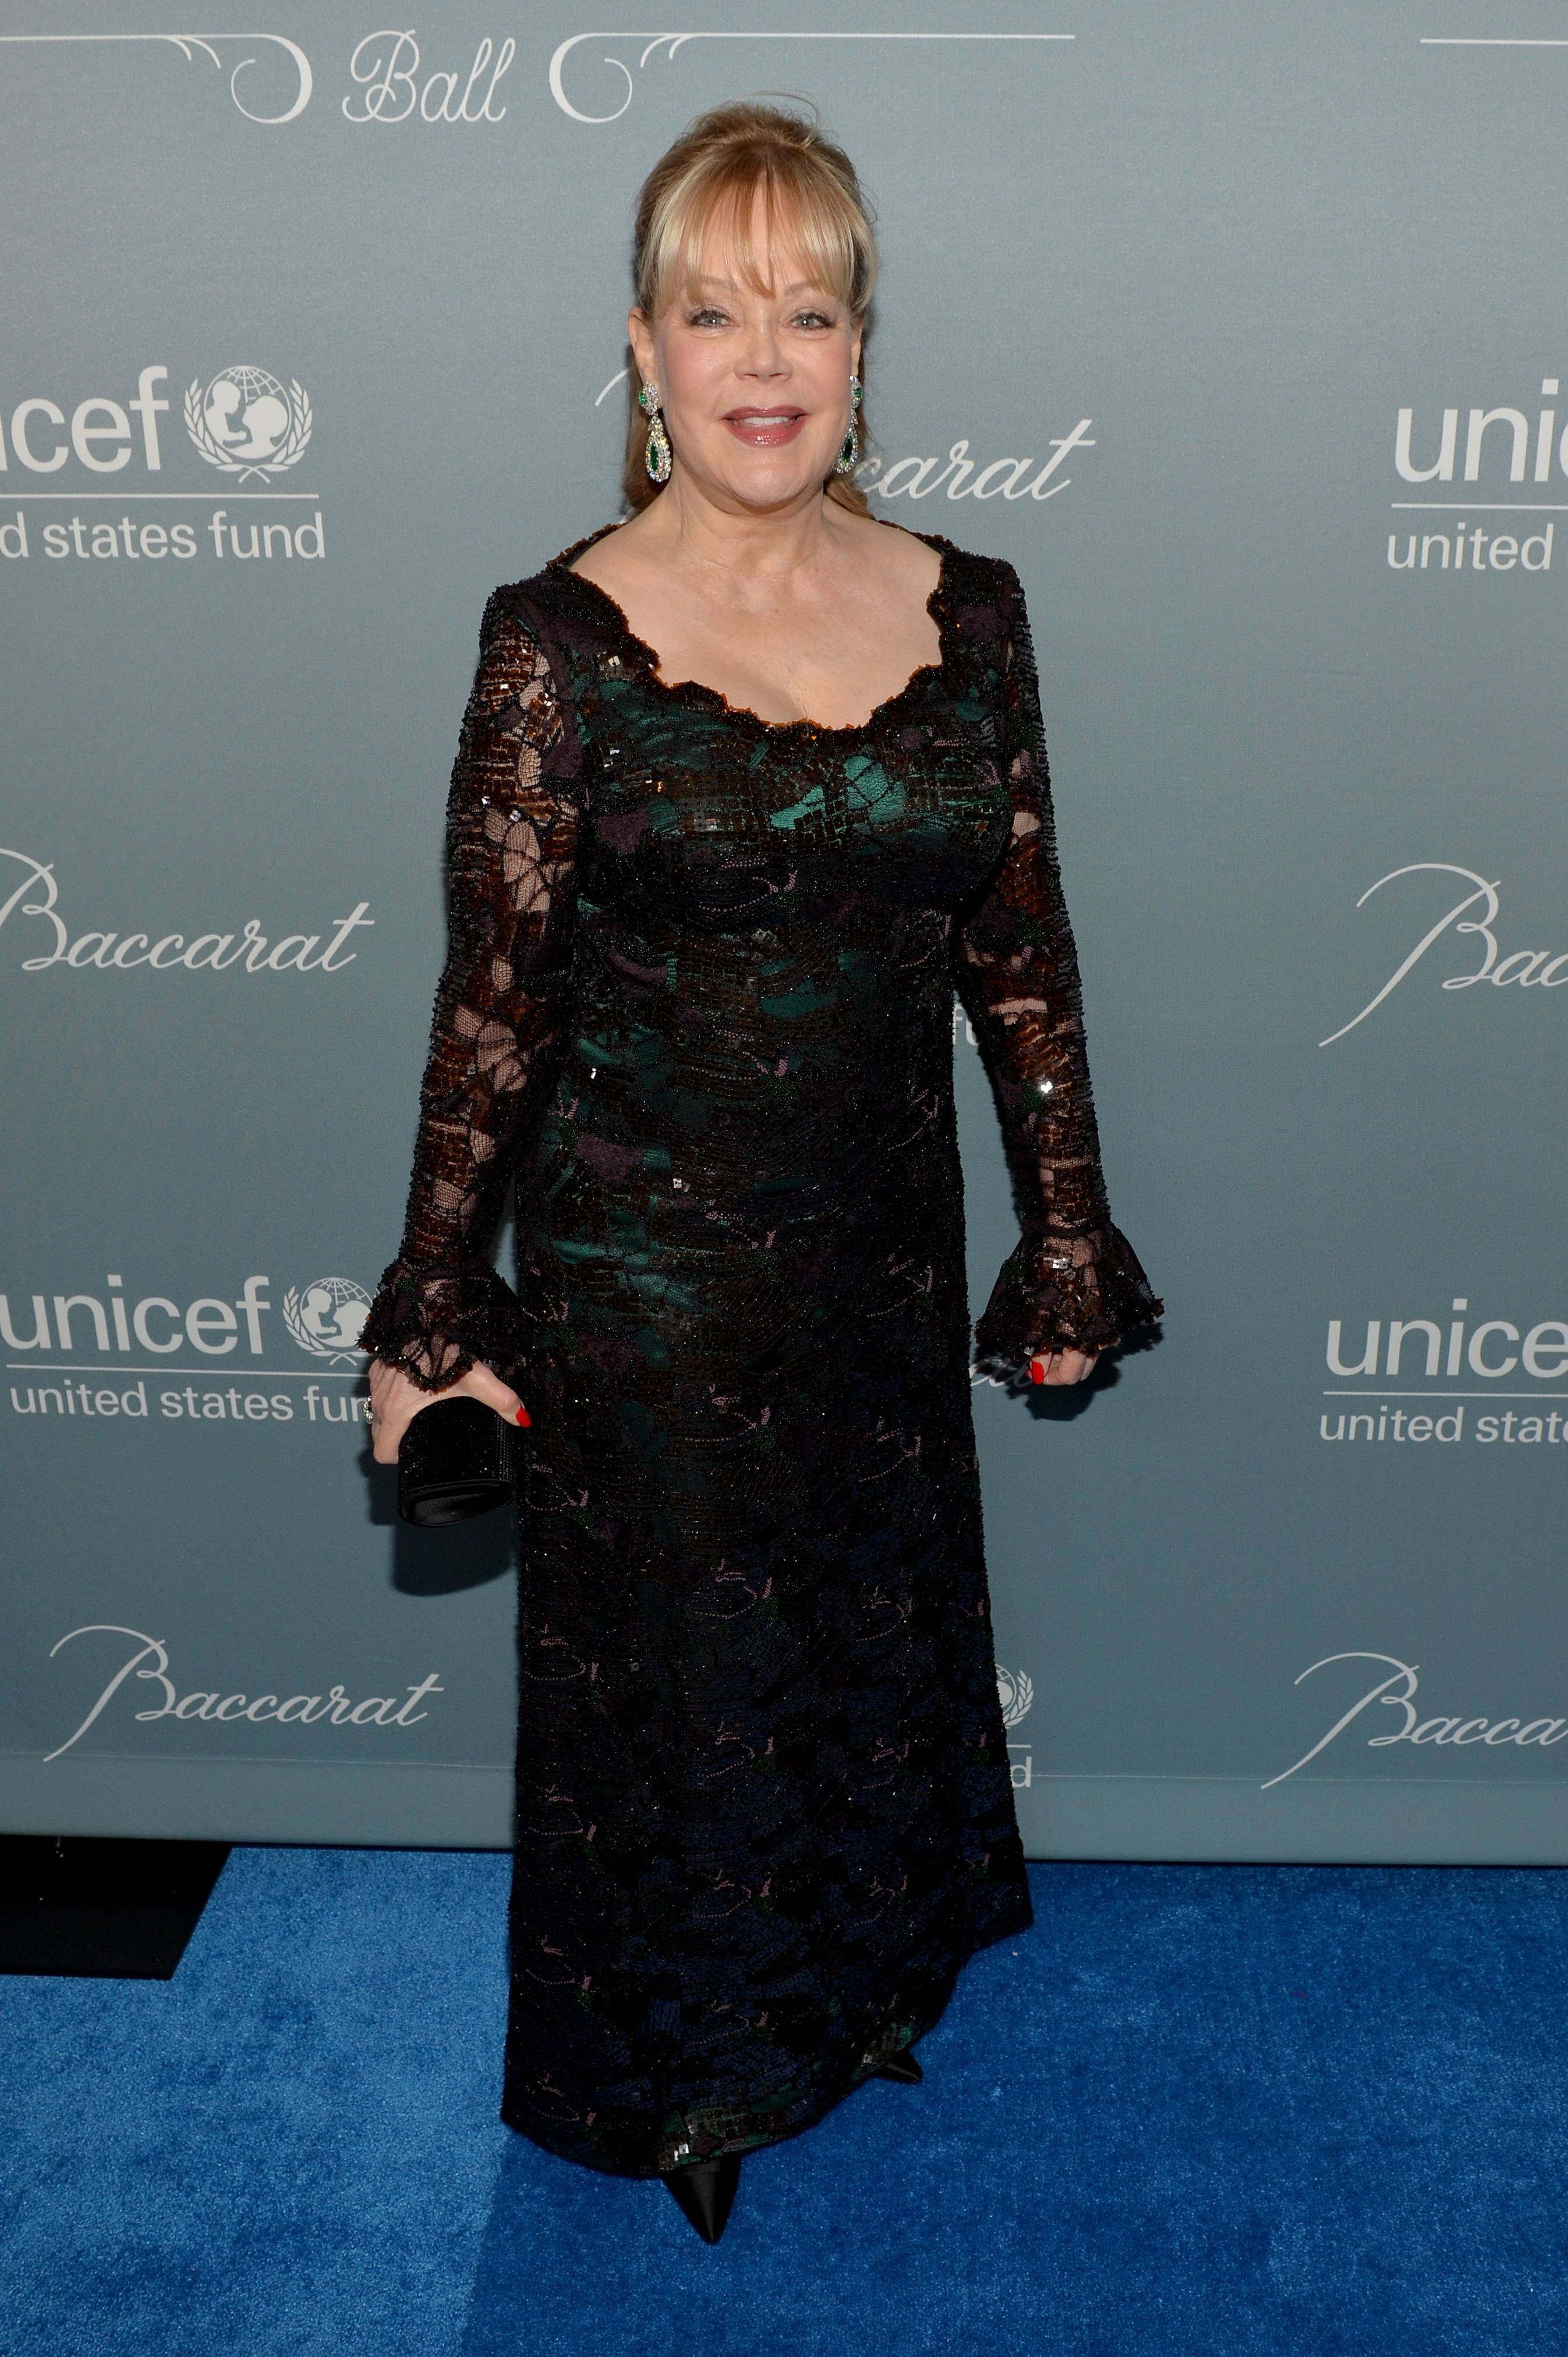 The 2014 UNICEF Ball Presented By Baccarat - Red Carpet